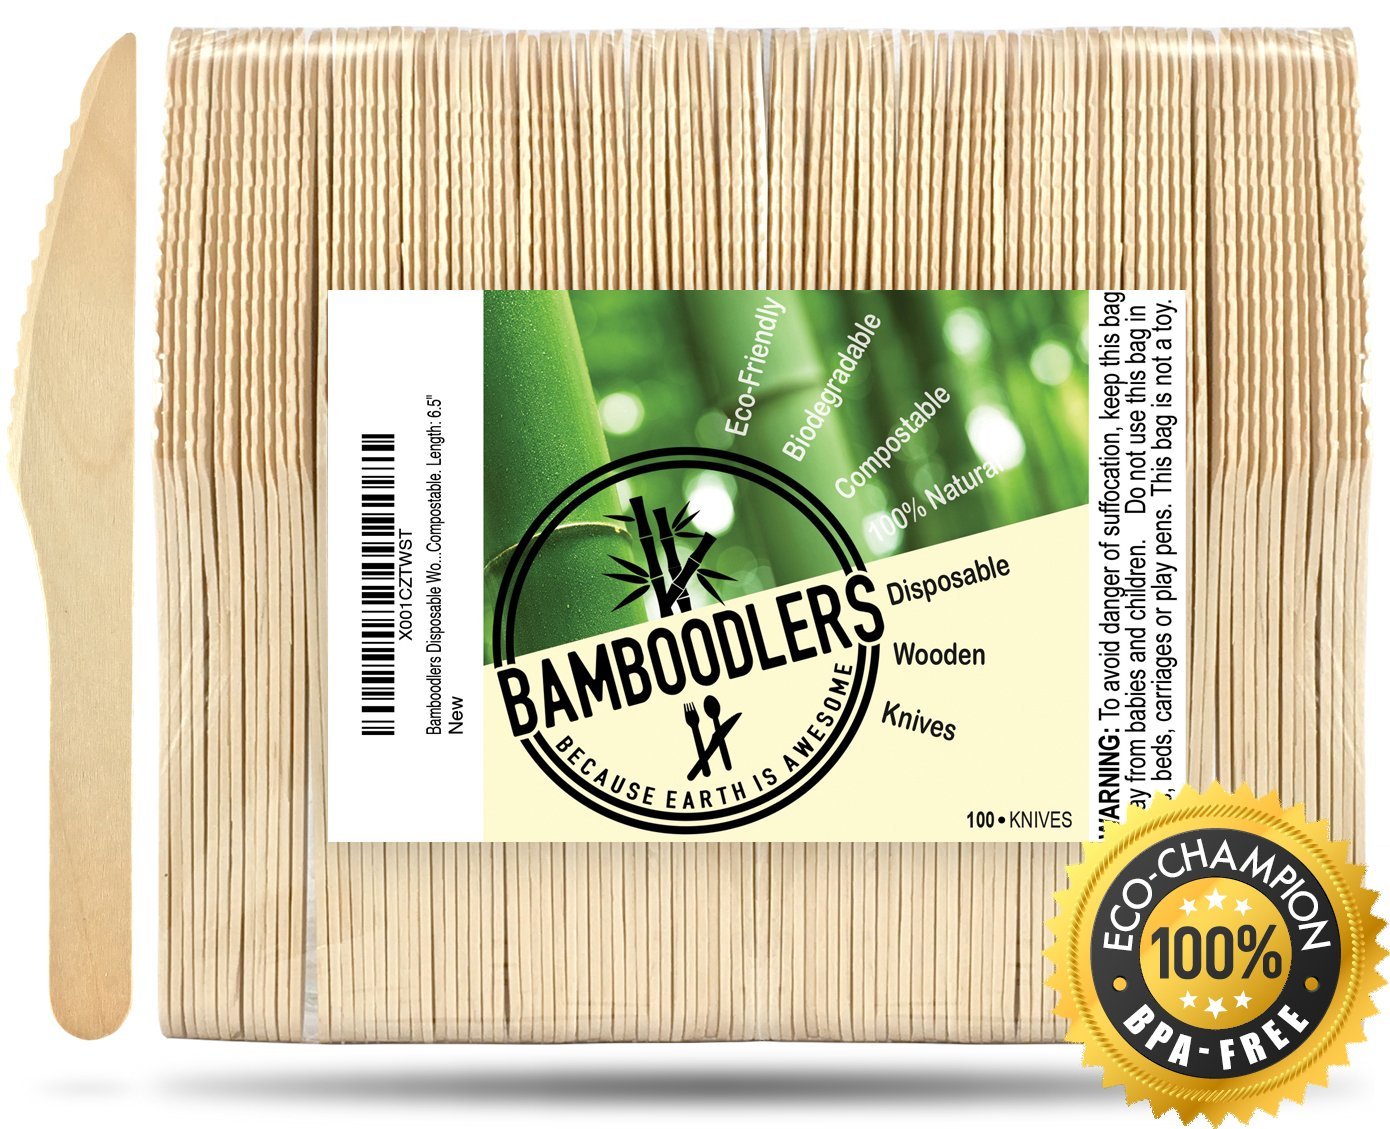 Disposable Wooden Knives by Bamboodlers | 100% All-Natural, Eco-Friendly, Biodegradable, and Compostable - Because Earth is Awesome! Pack of 100-6.5'' Knives. by BAMBOODLERS